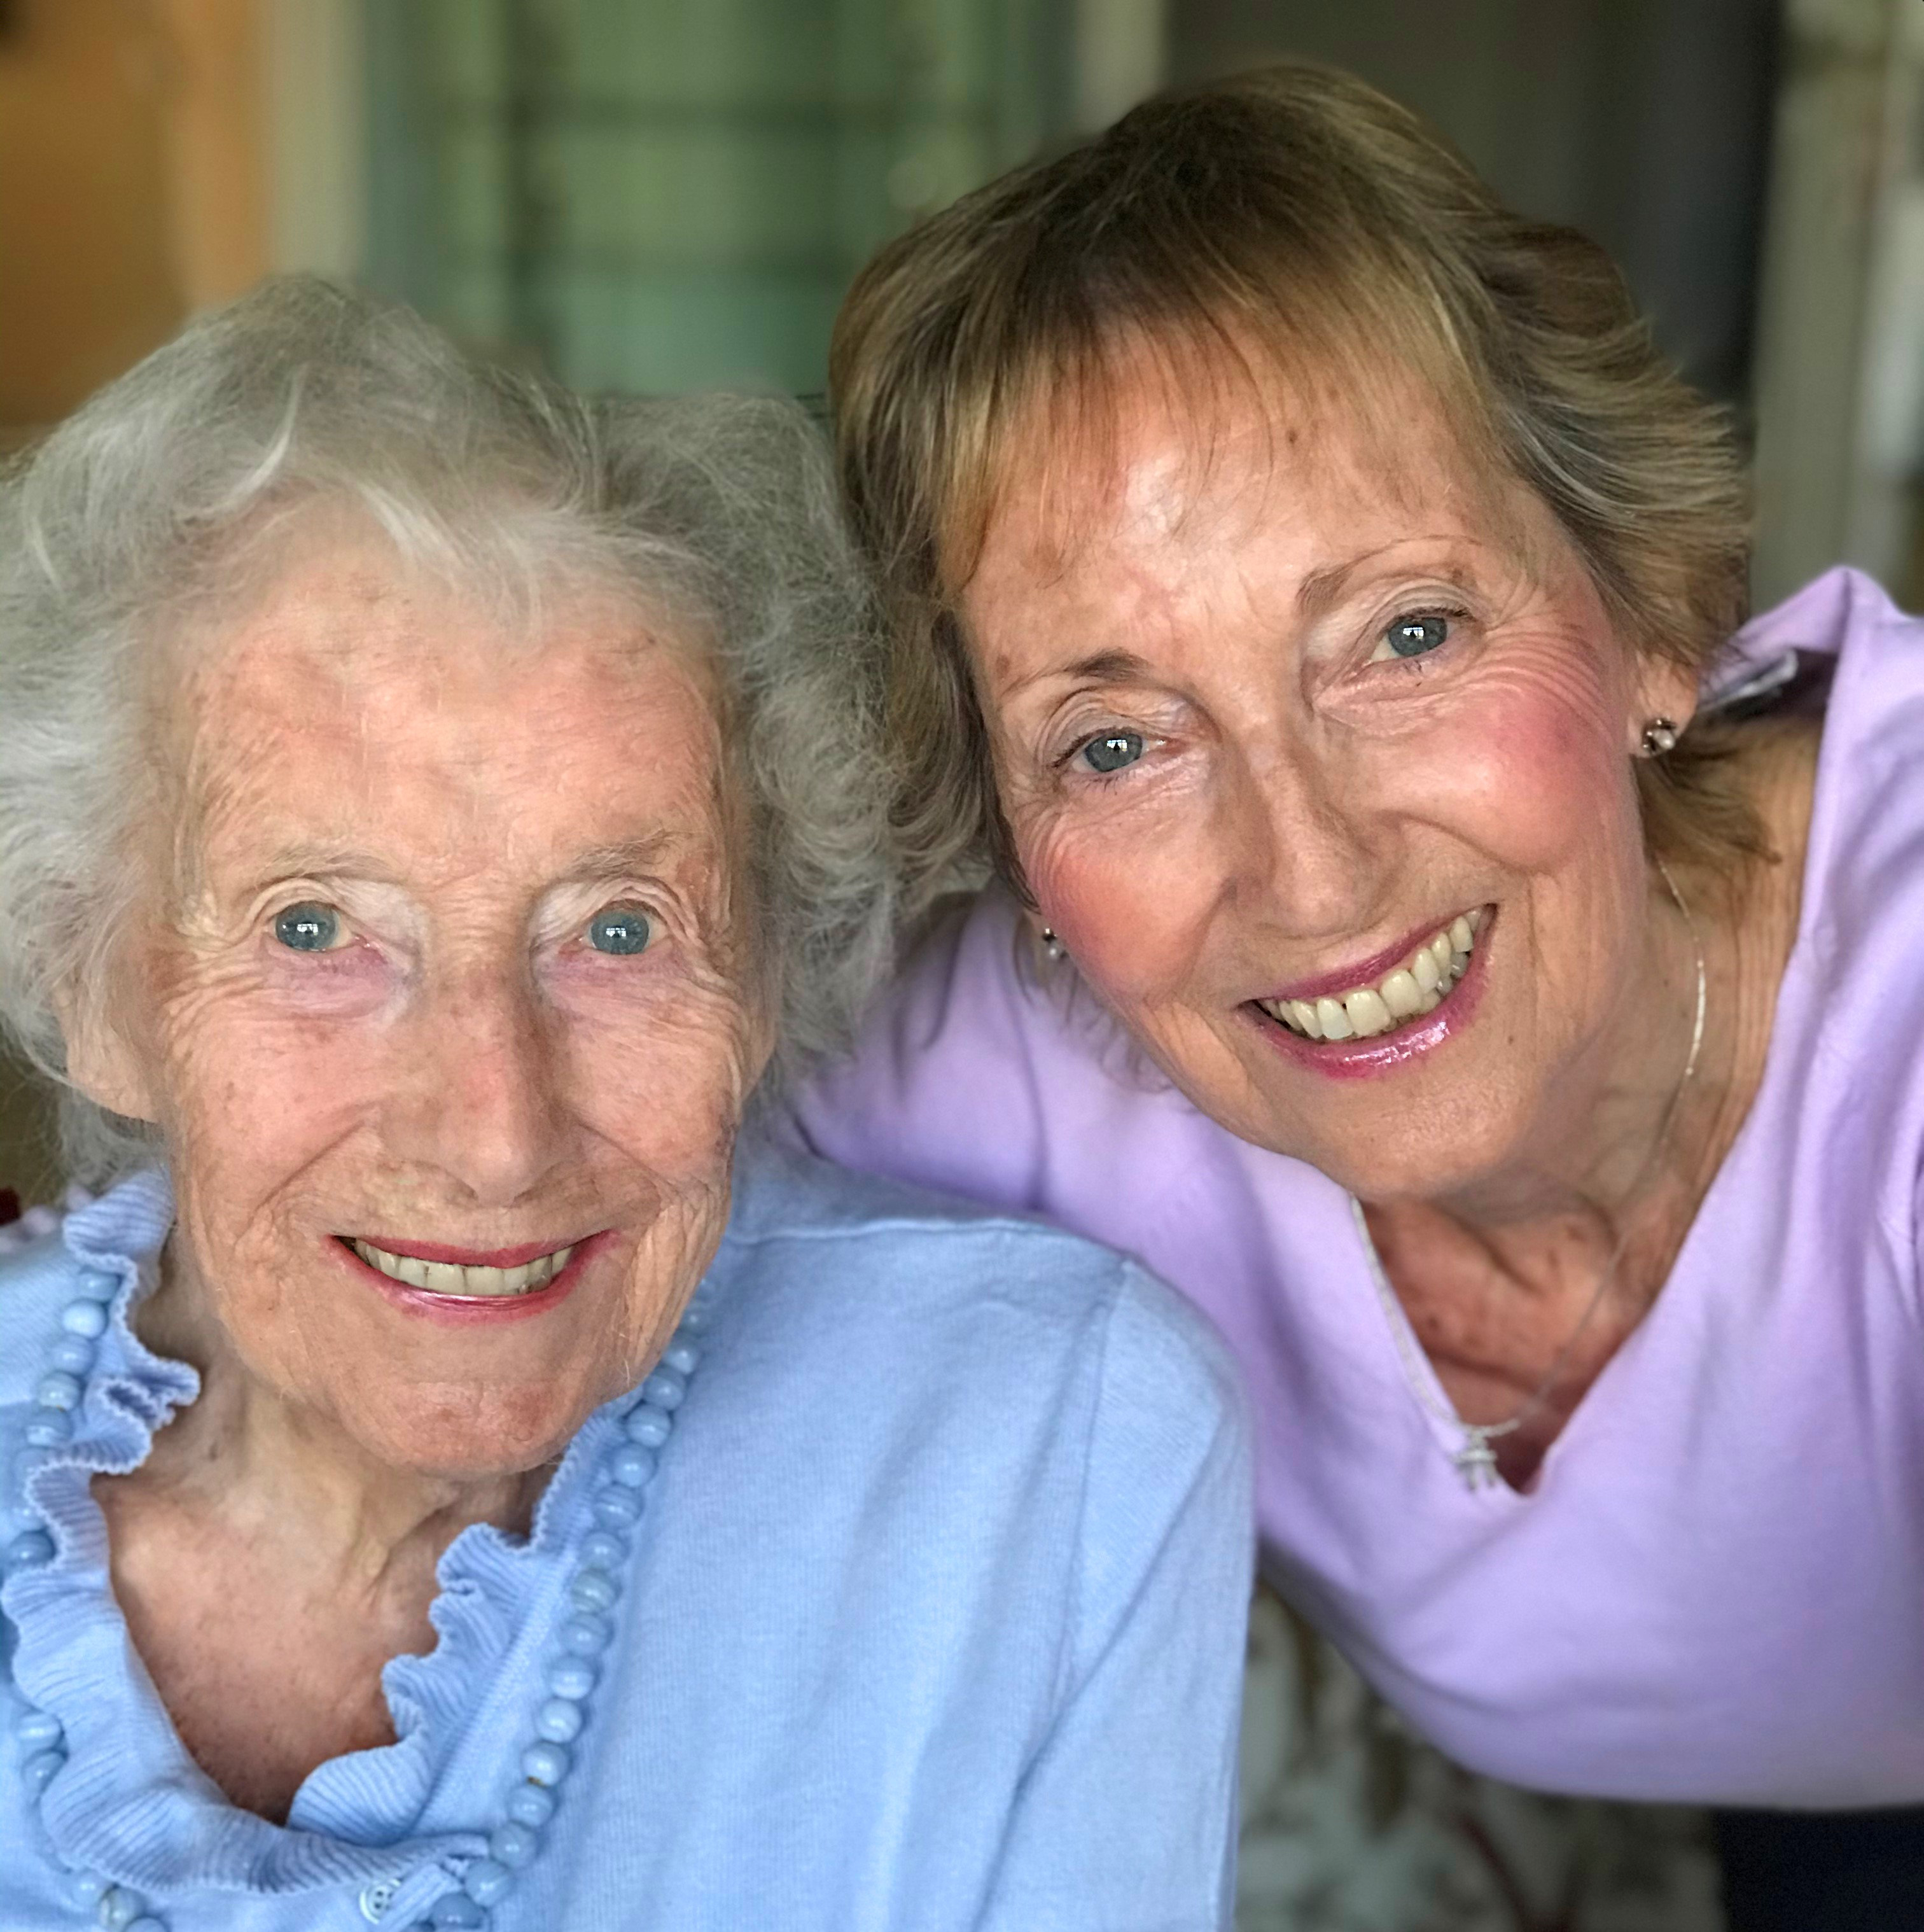 Dame Vera Lynn's daughter Virginia Lewis-Jones has thanked the British public for its 'tremendous' support following the adored singer's death